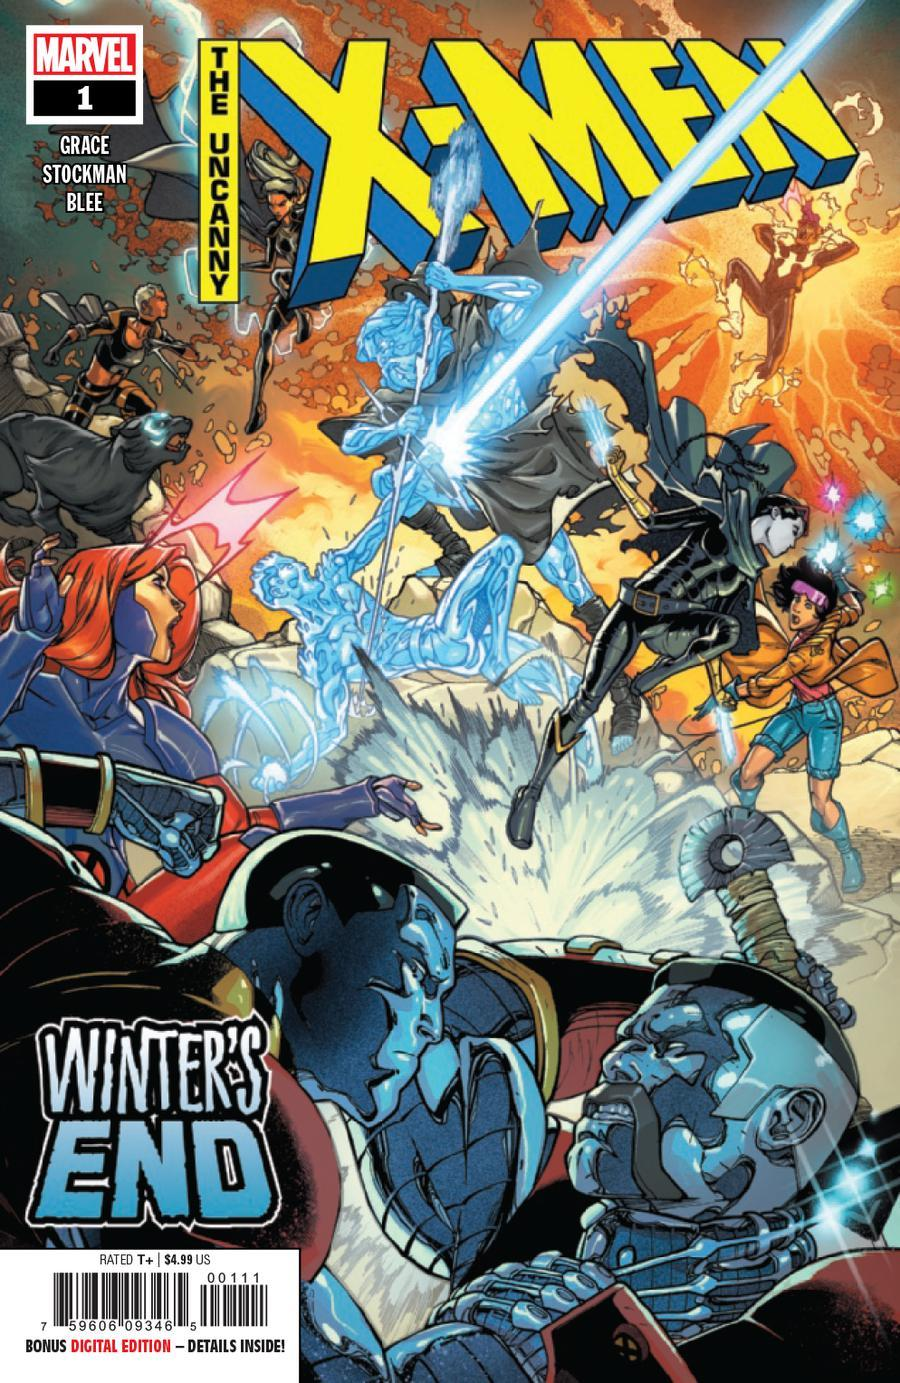 Uncanny X-Men Winters End Vol. 1 #1